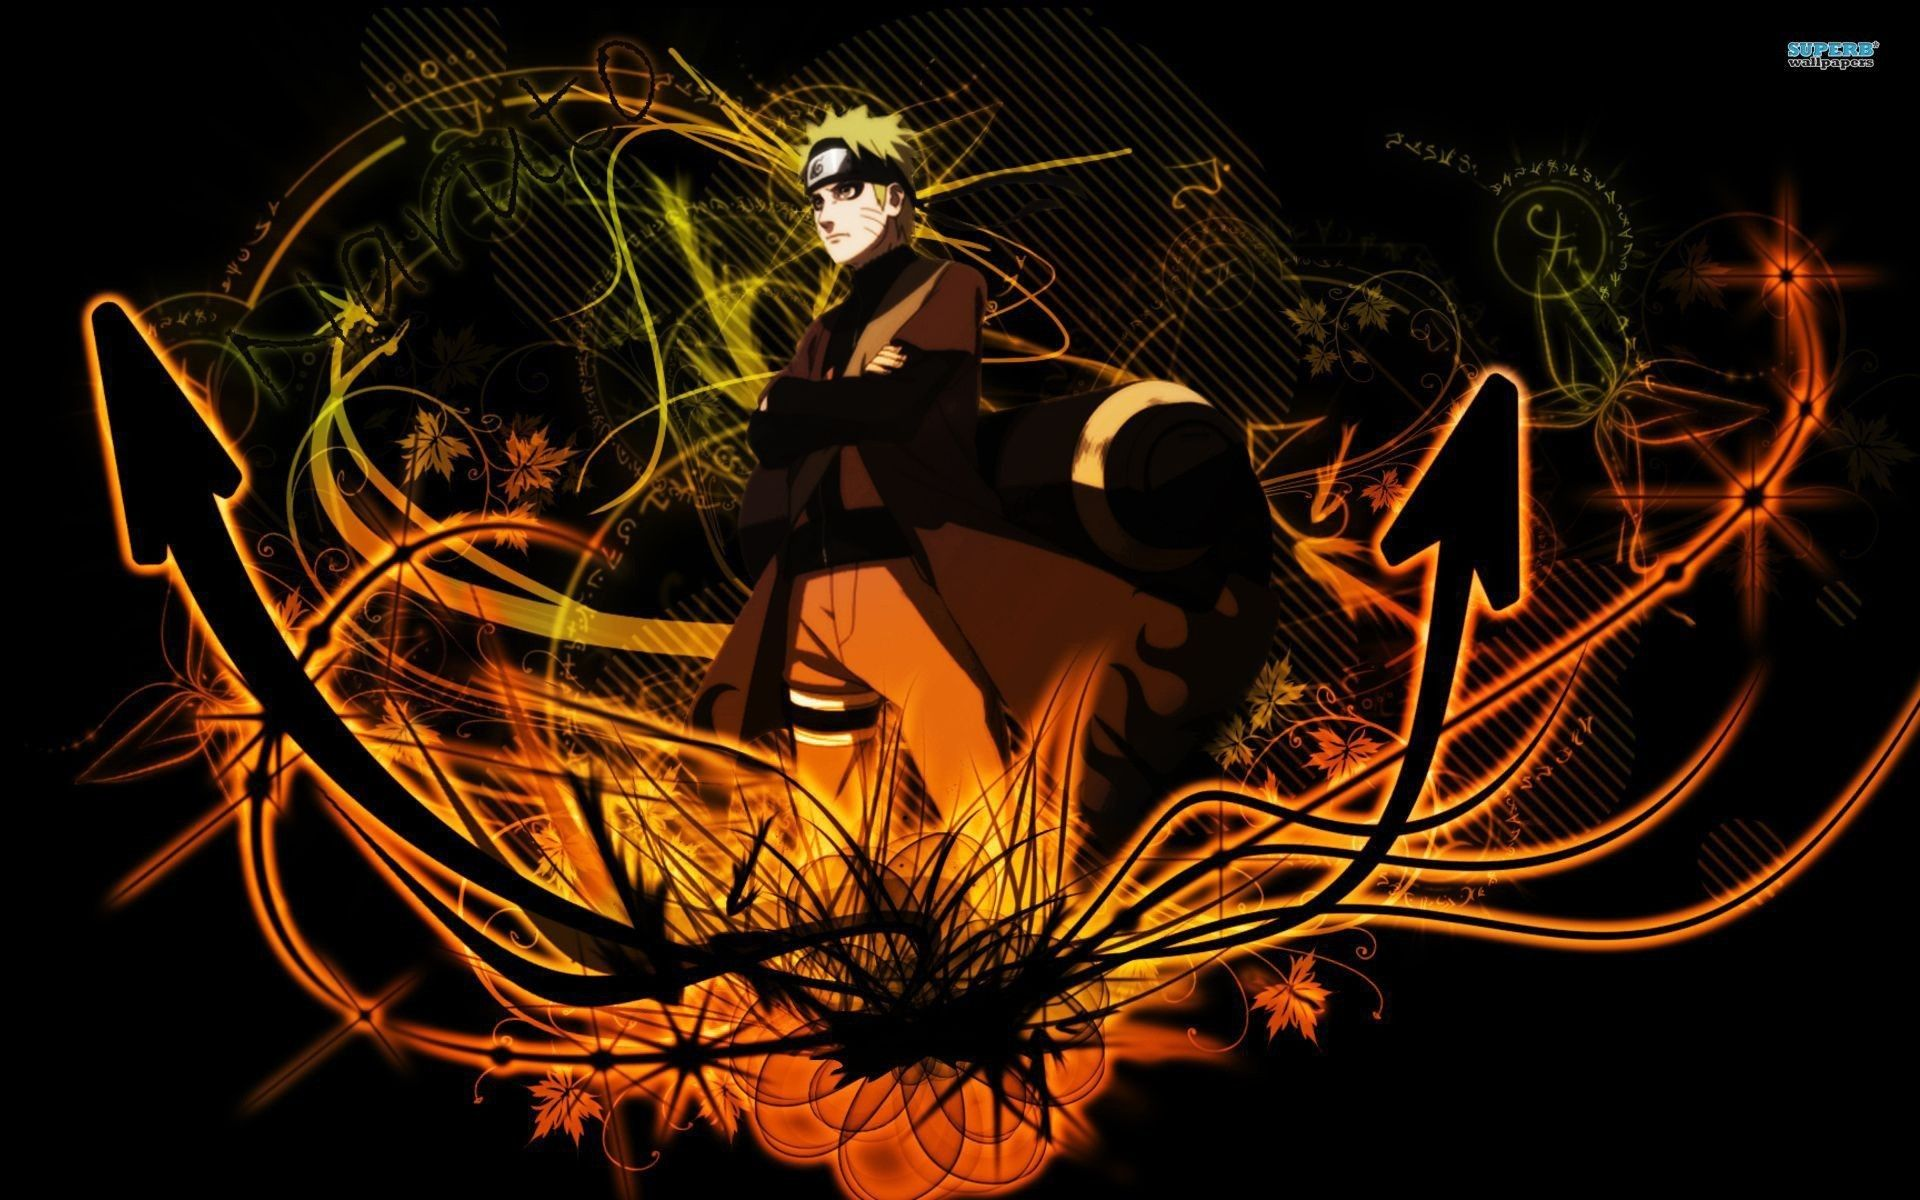 Wallpaper Bergerak Naruto Hd Di 2020